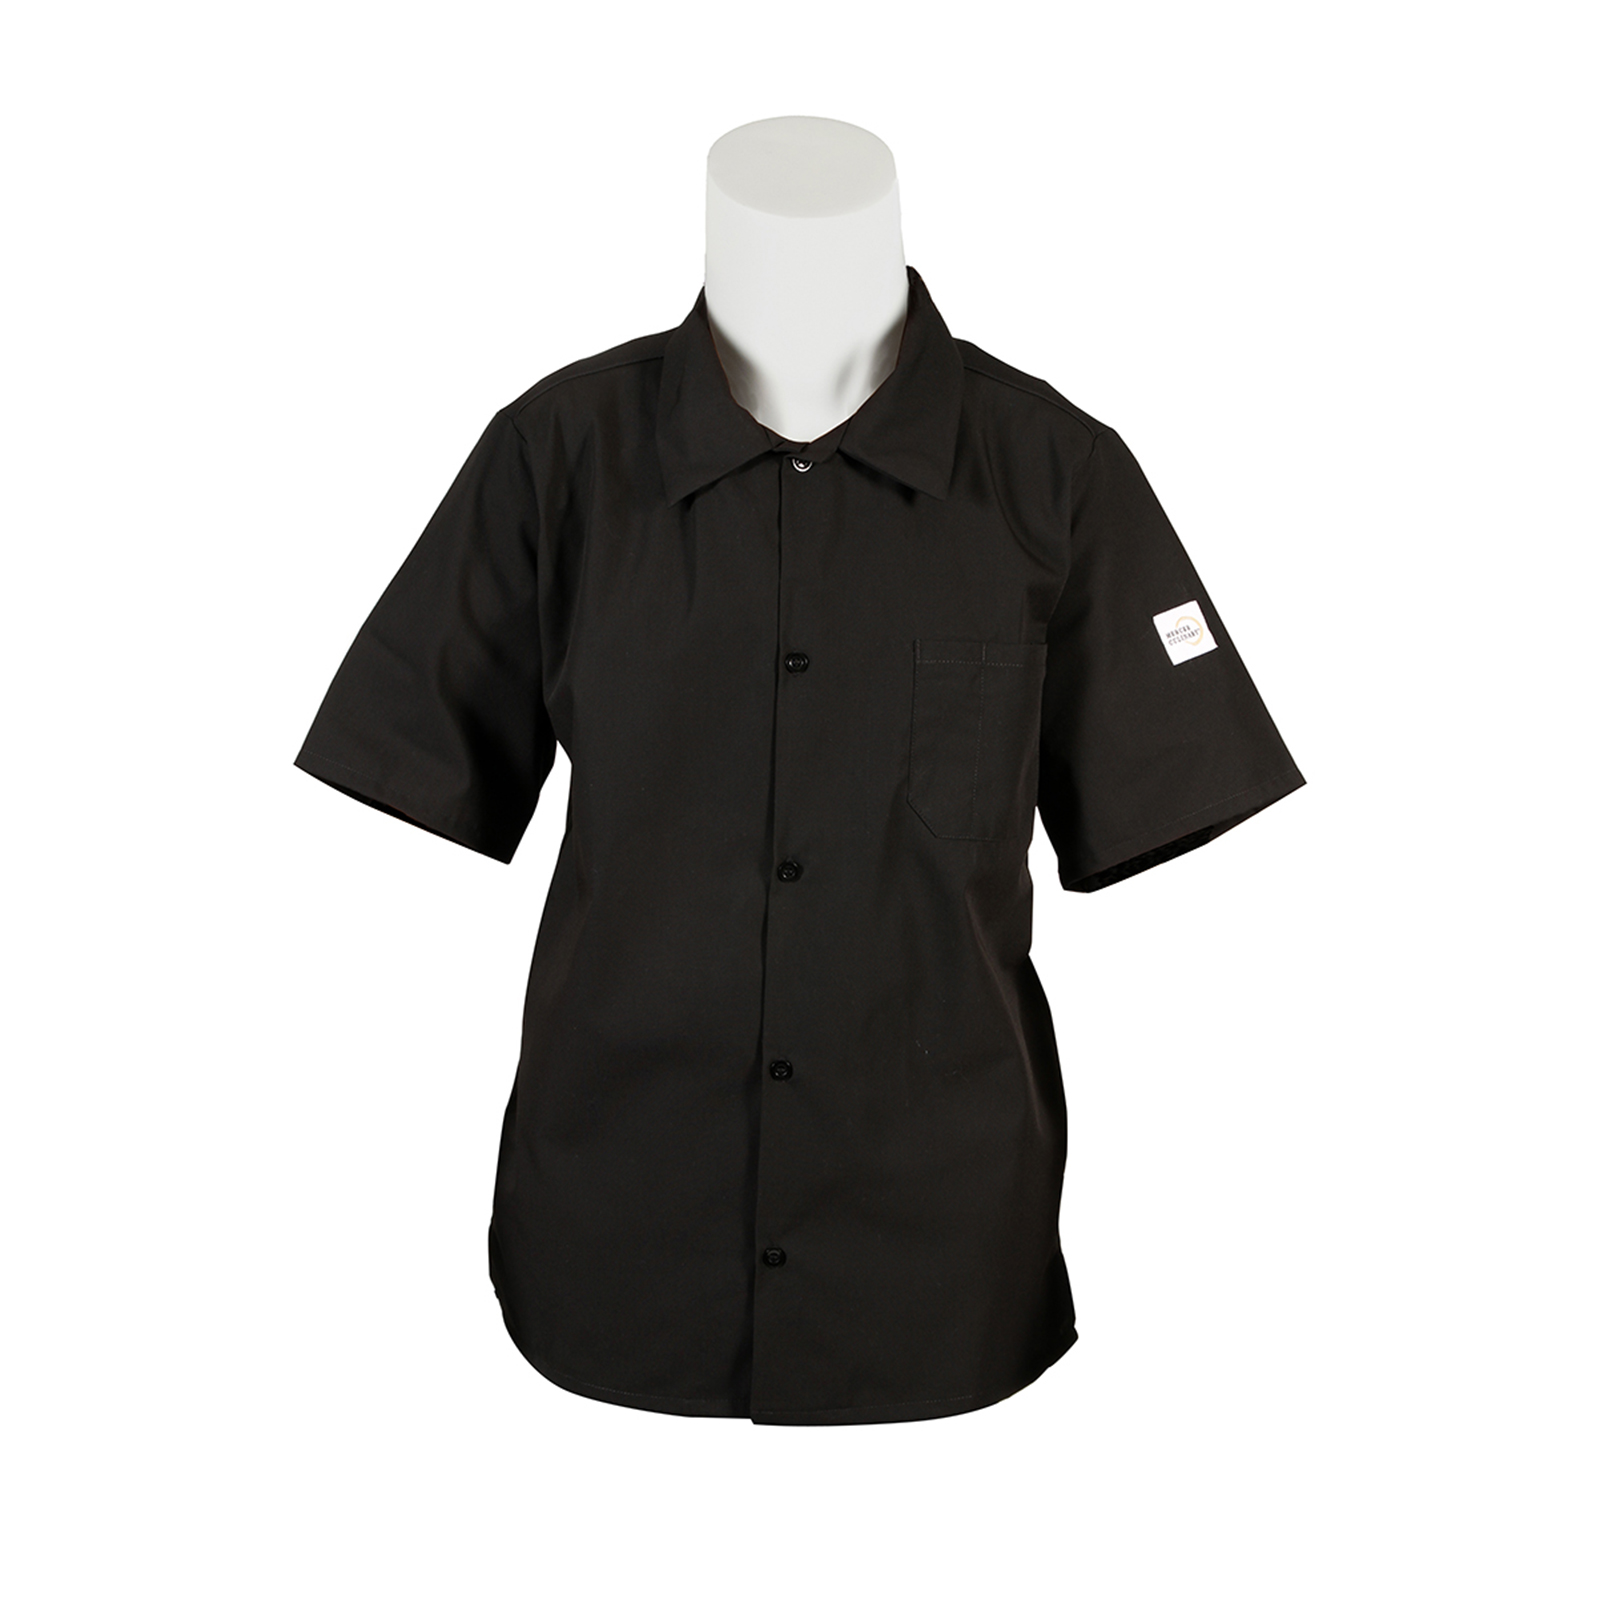 Mercer Culinary M60200BKM cook's shirt